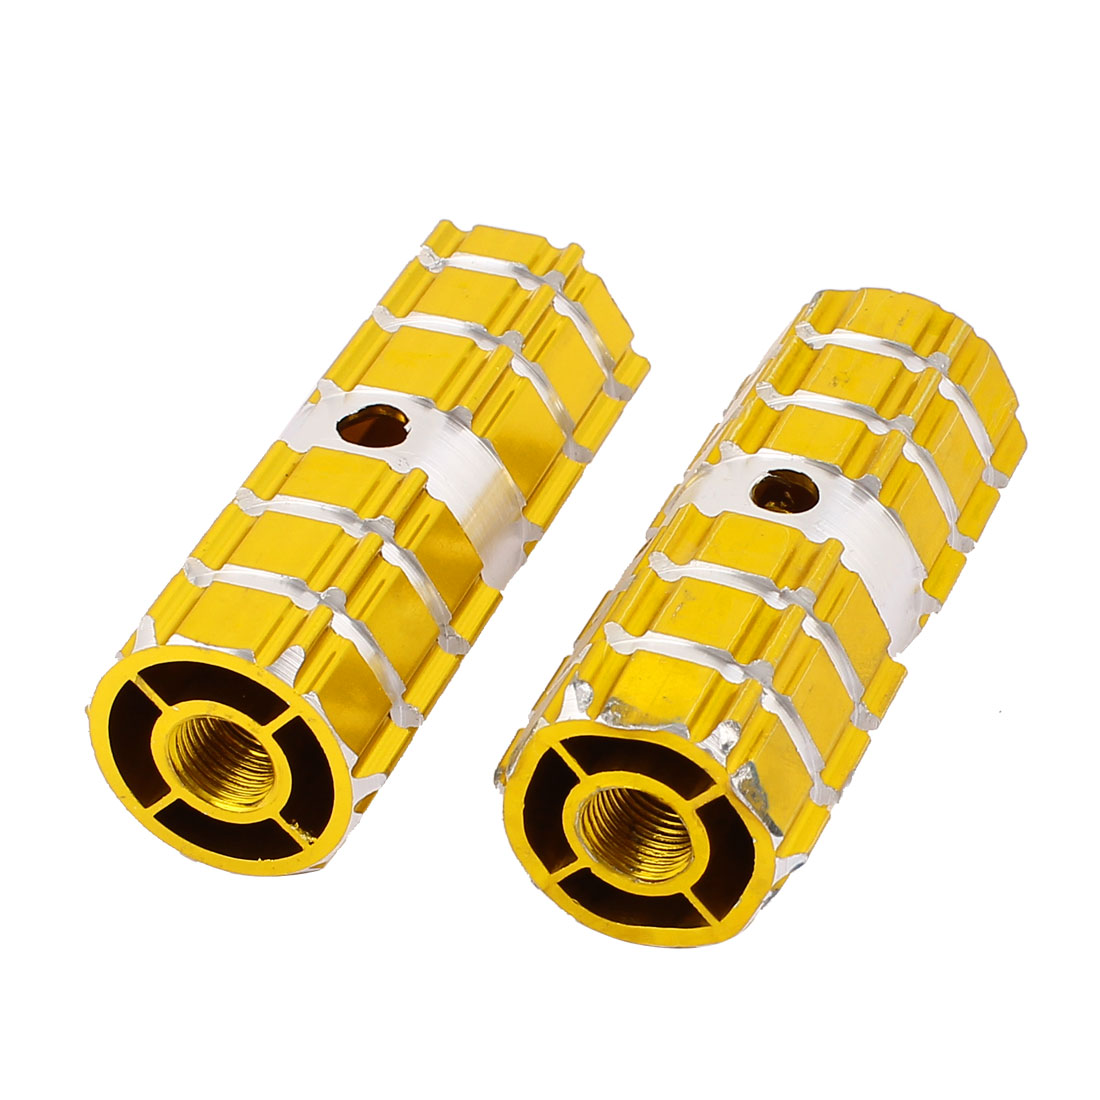 8mm Female Thread Gold Tone Aluminum Anti-slip Solid Bicycle Axle Foot Pegs 2 Pcs